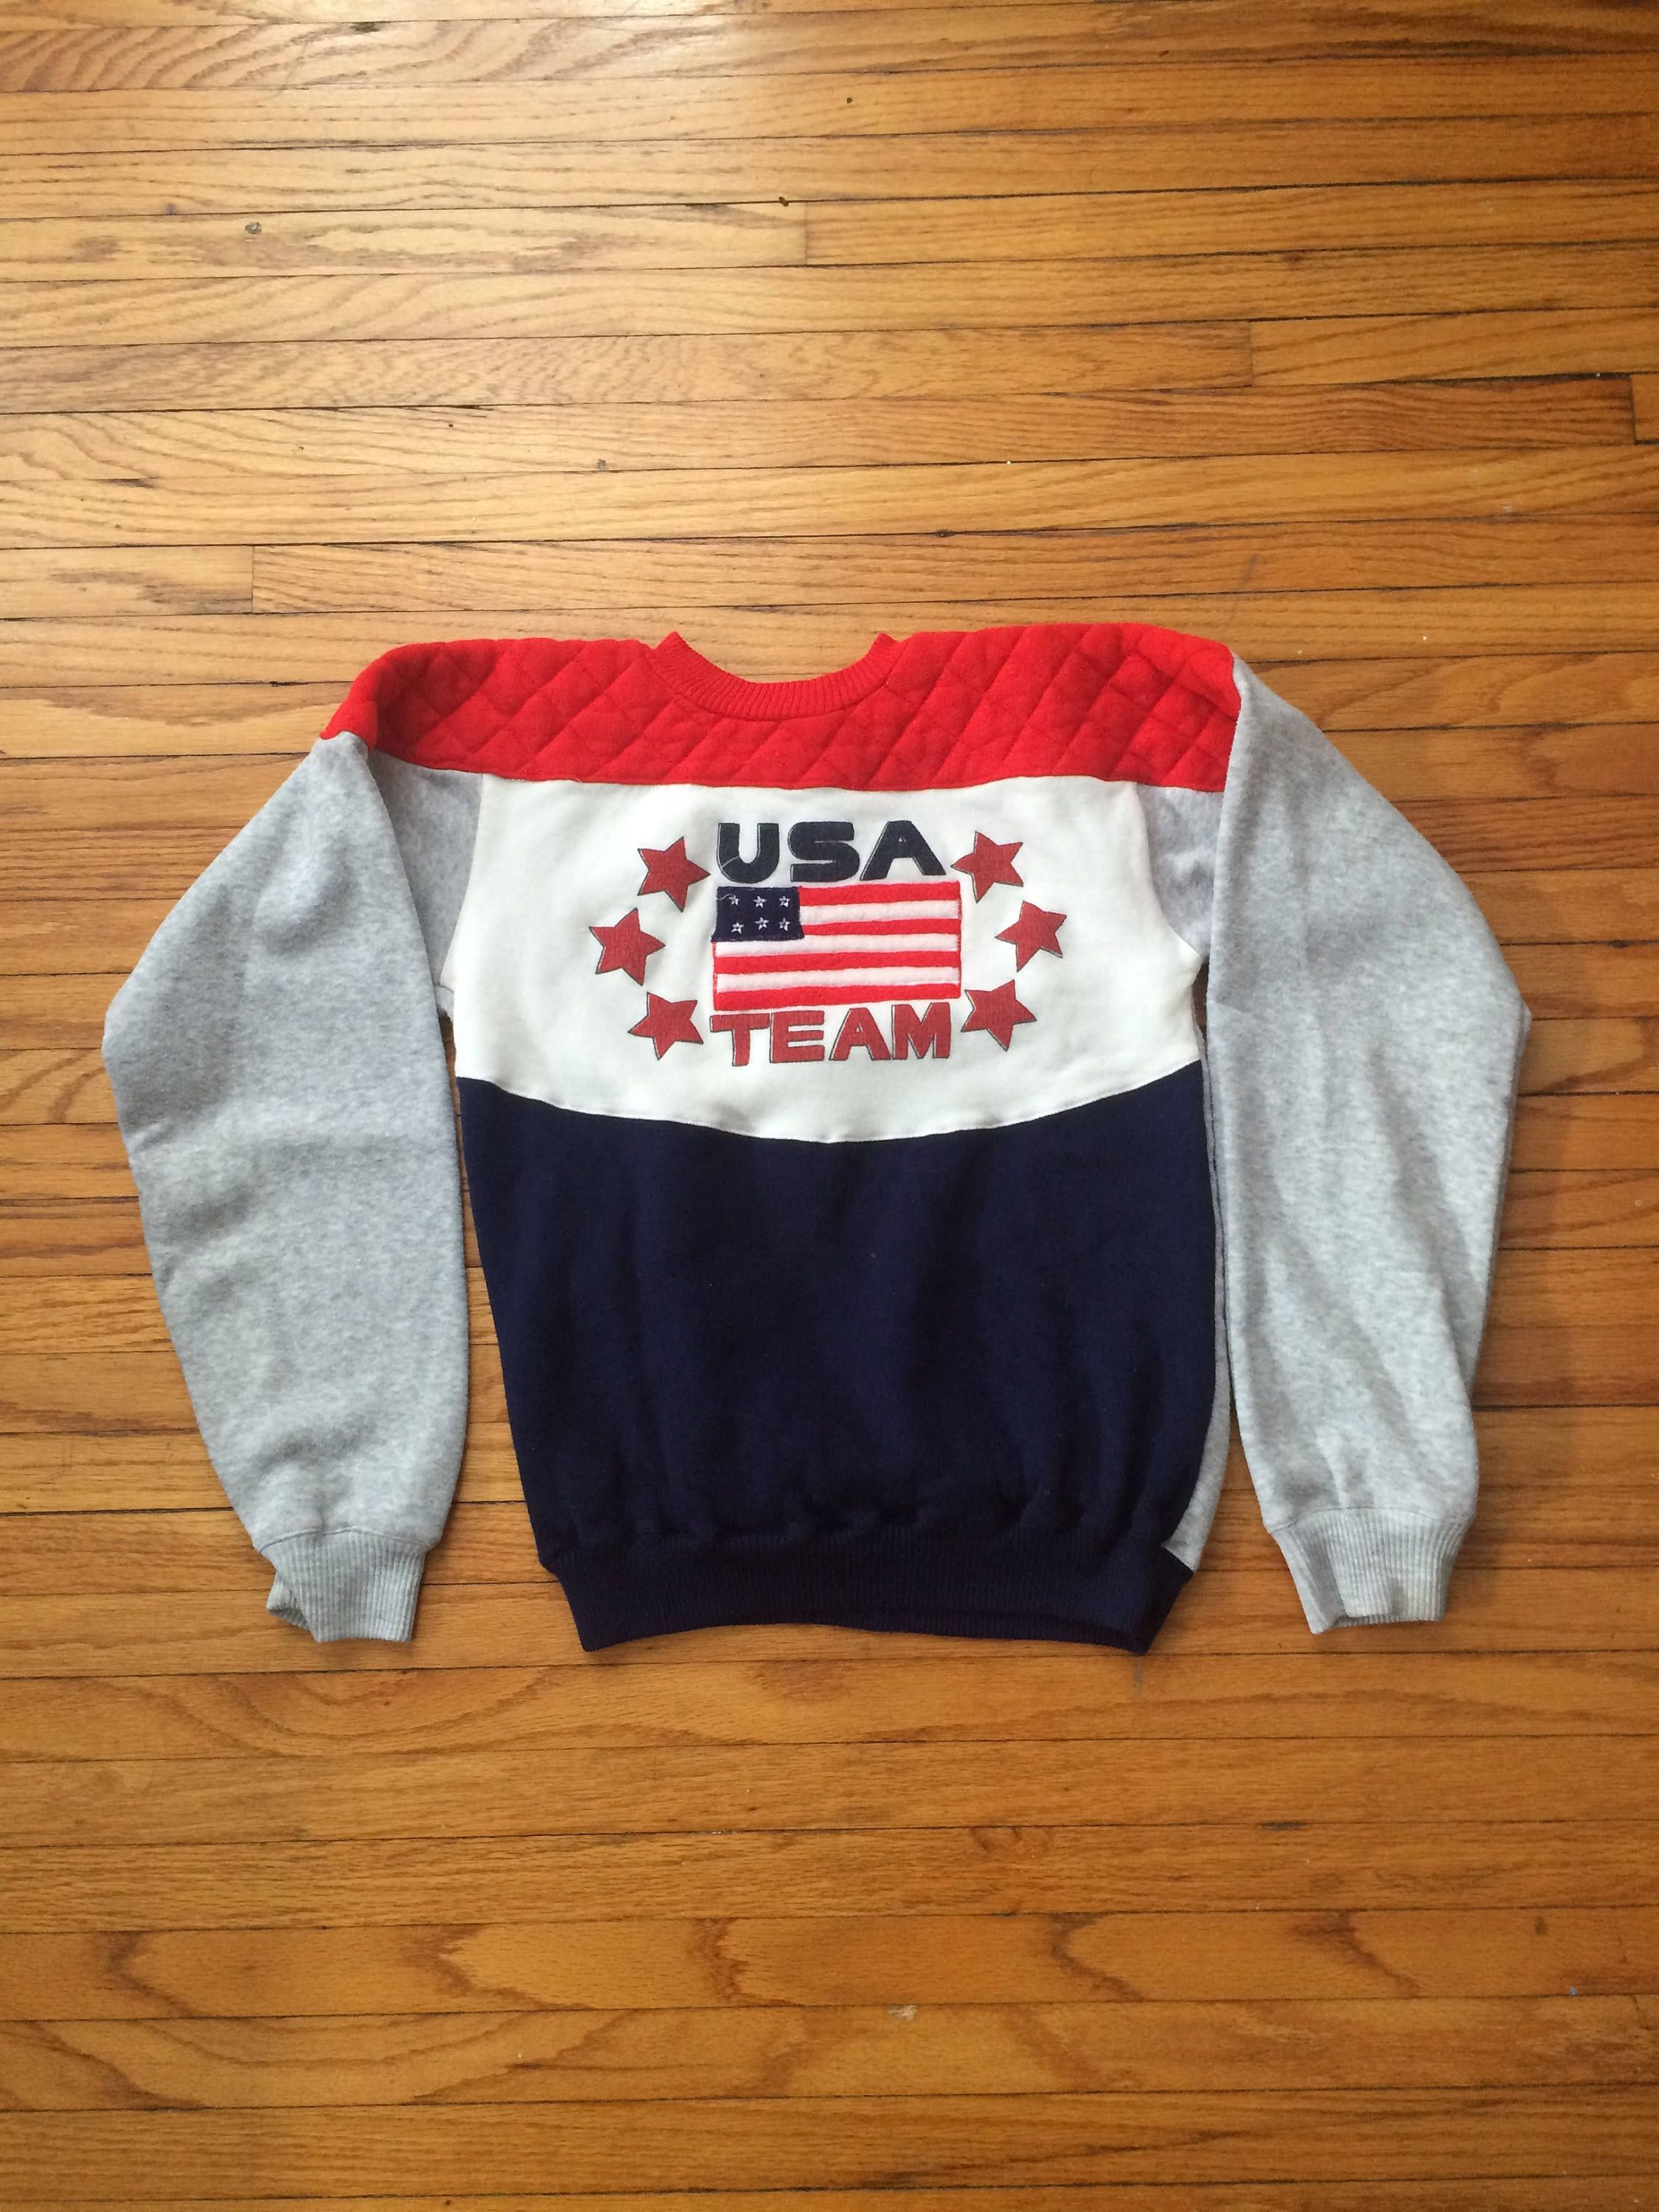 7694fefb5c Vintage Team USA Olympic Style Red White and Blue Soft Sweatshirt by  VintageVanShop on Etsy